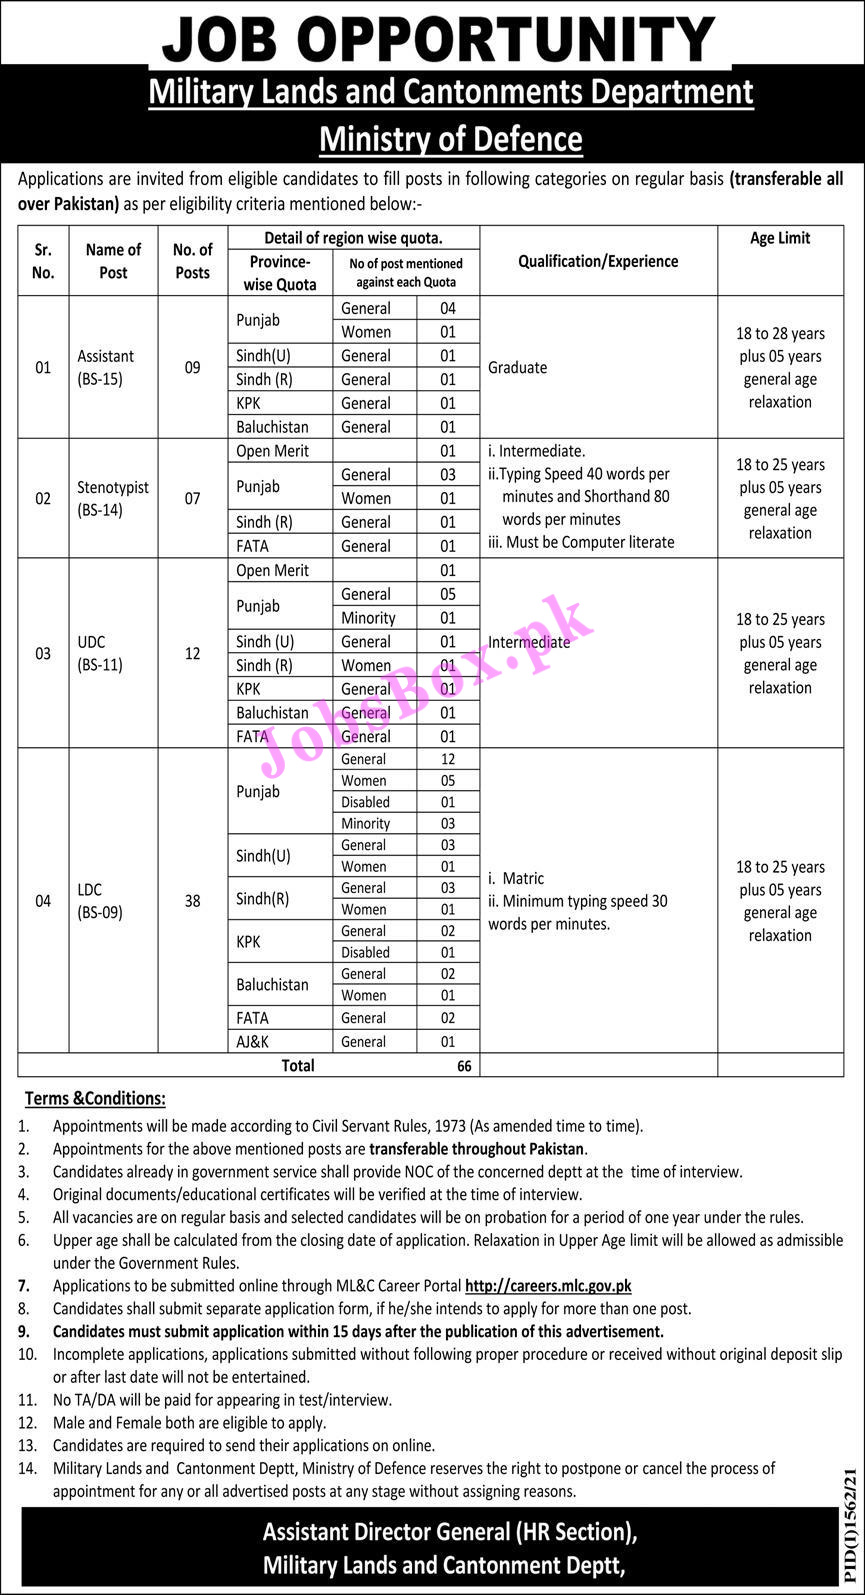 Military Lands and Cantonments Department Jobs 2021 – Careers.mlc.gov.pk